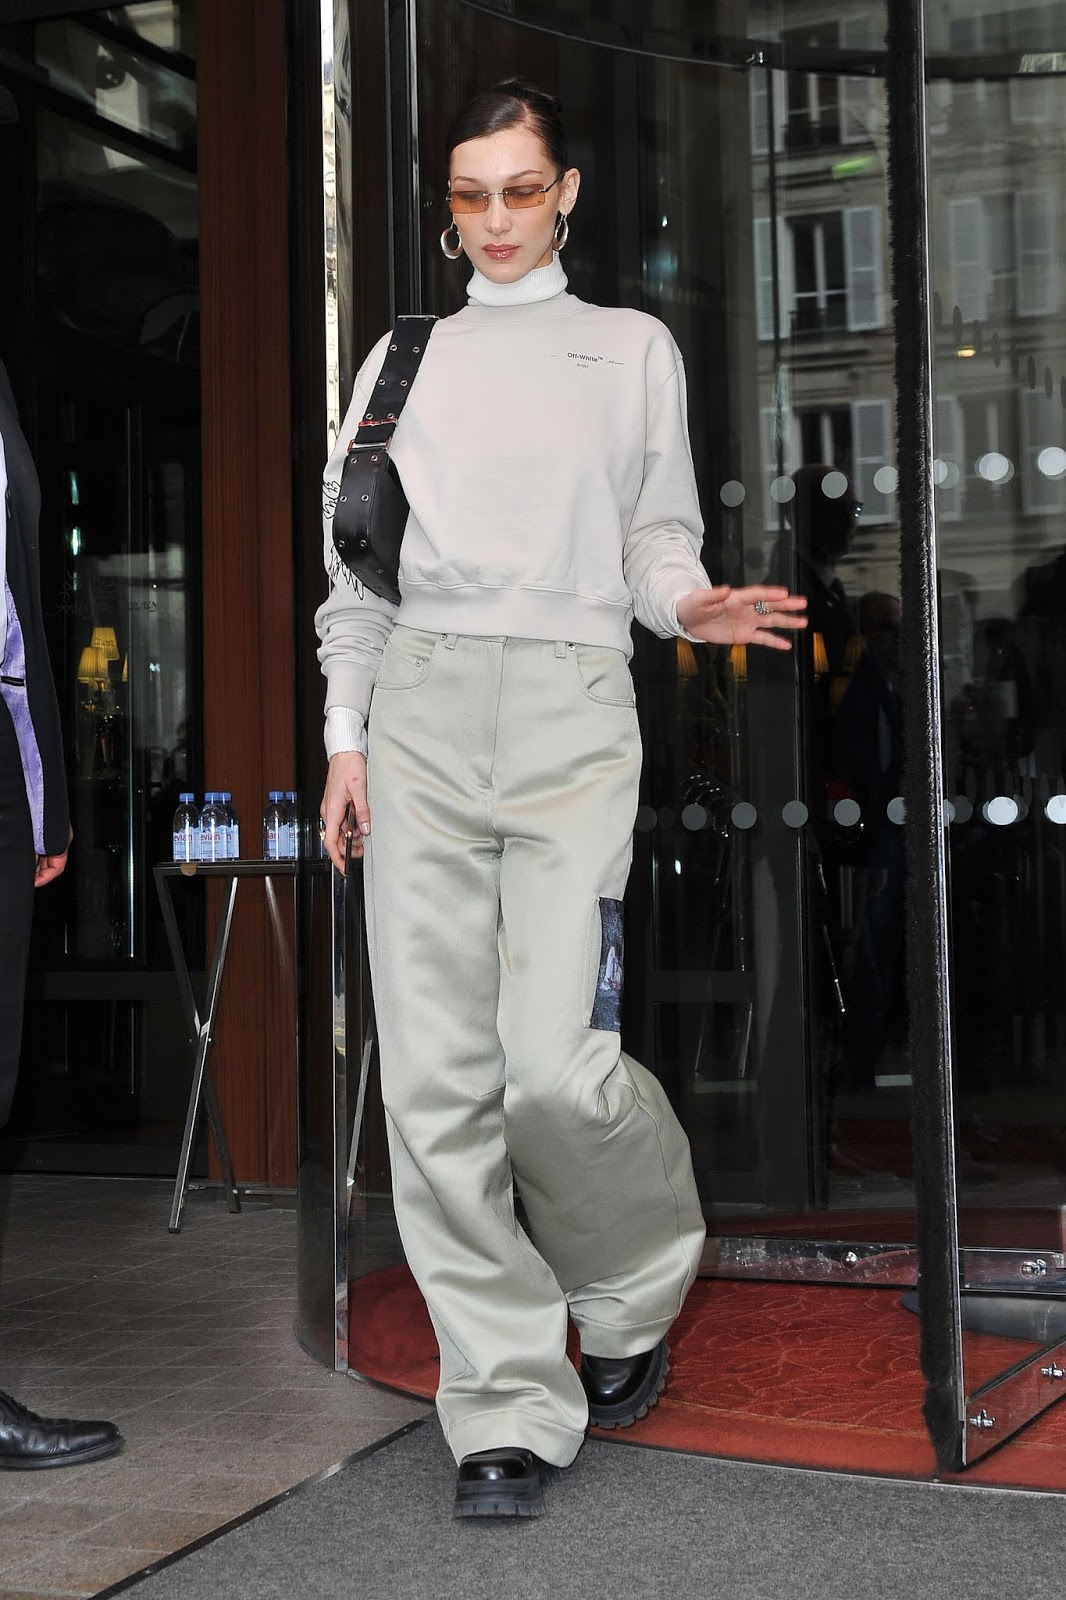 Bella Hadid - Out and about in Paris, France February 28, 2019